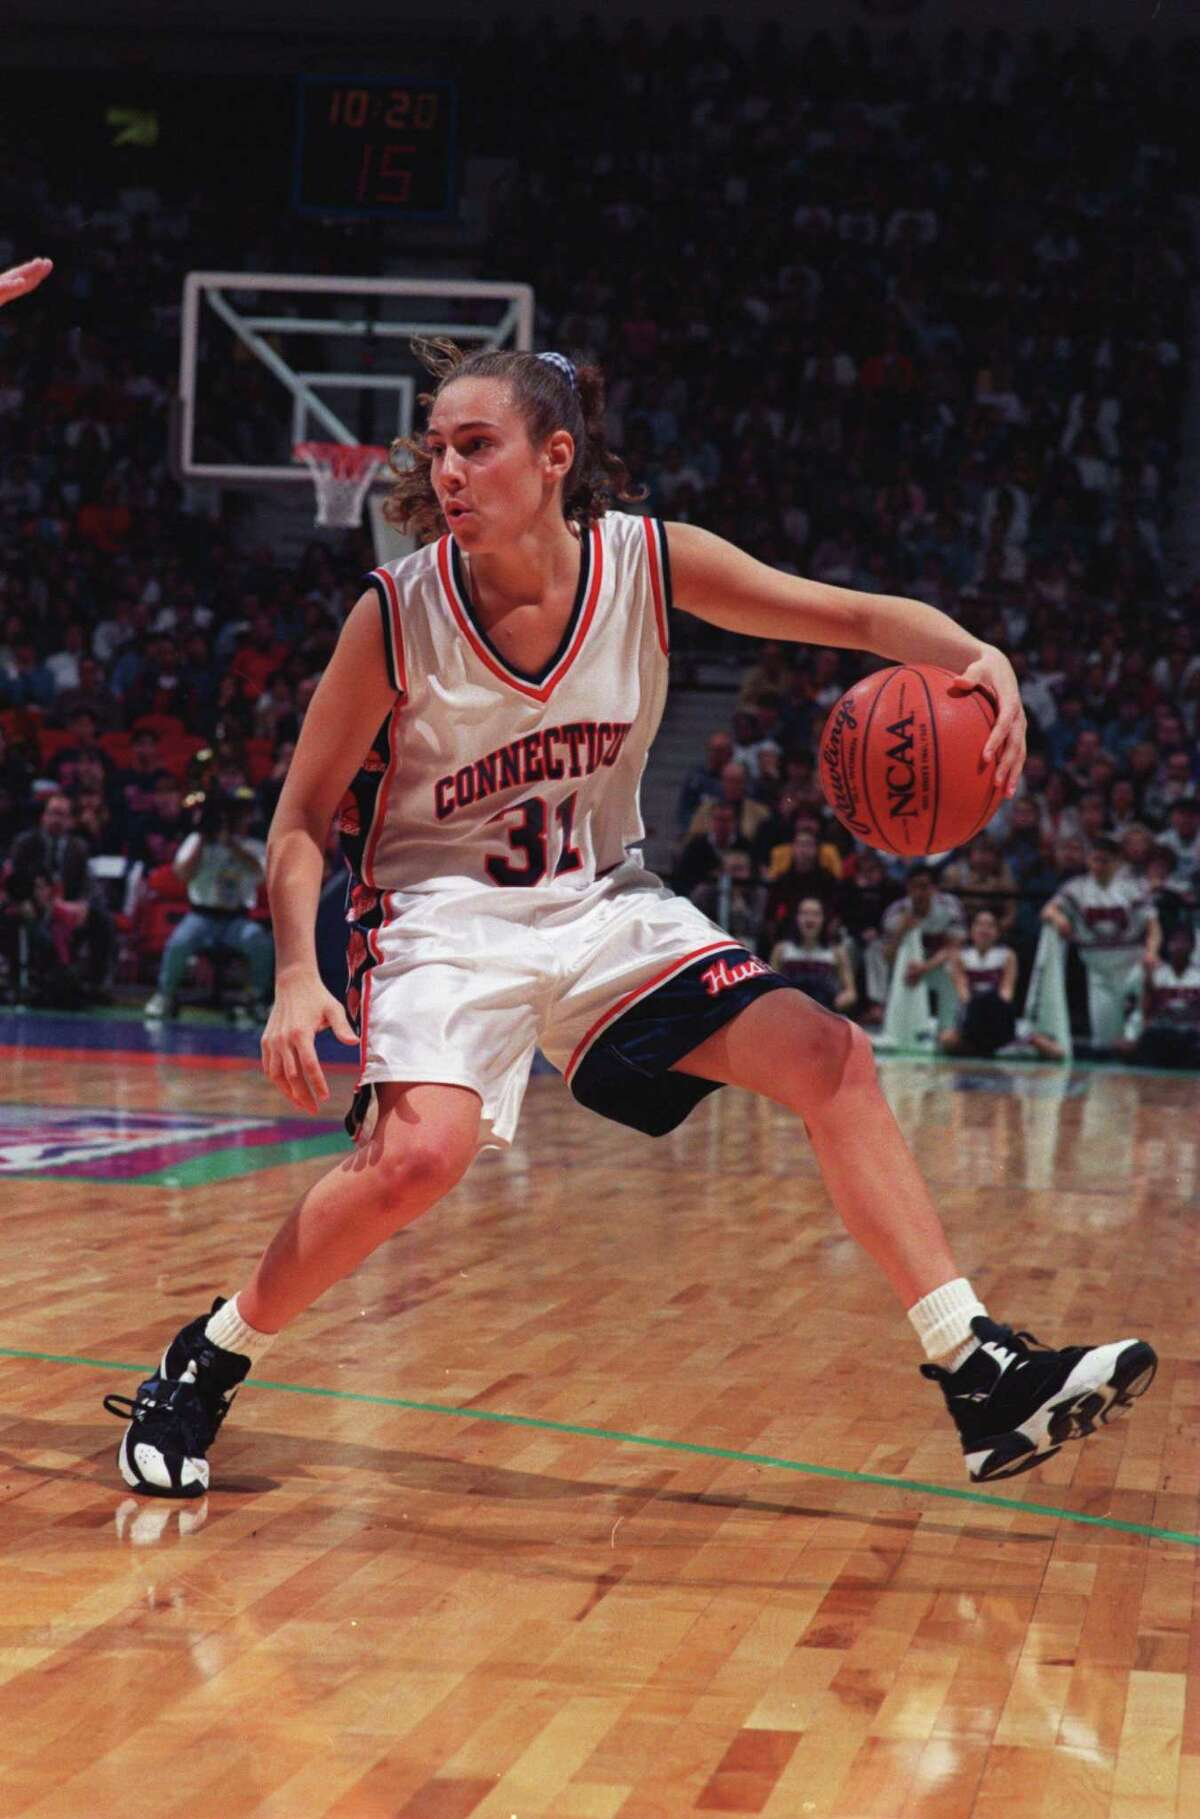 1 APR 1995: CARLA BERUBE OF THE UNIVERSITY OF CONNECTICUT LOOKS TO MAKE A PLAY DURING THEIR 70-64 WIN OVER TENNESSEE IN THE 1995 NCAA CHAMPIONSHIP GAME AT THE TARGET CENTER IN MINNEAPOLIS, MINNESOTA. Mandatory Credit: Jonathan Daniel/ALLSPORT